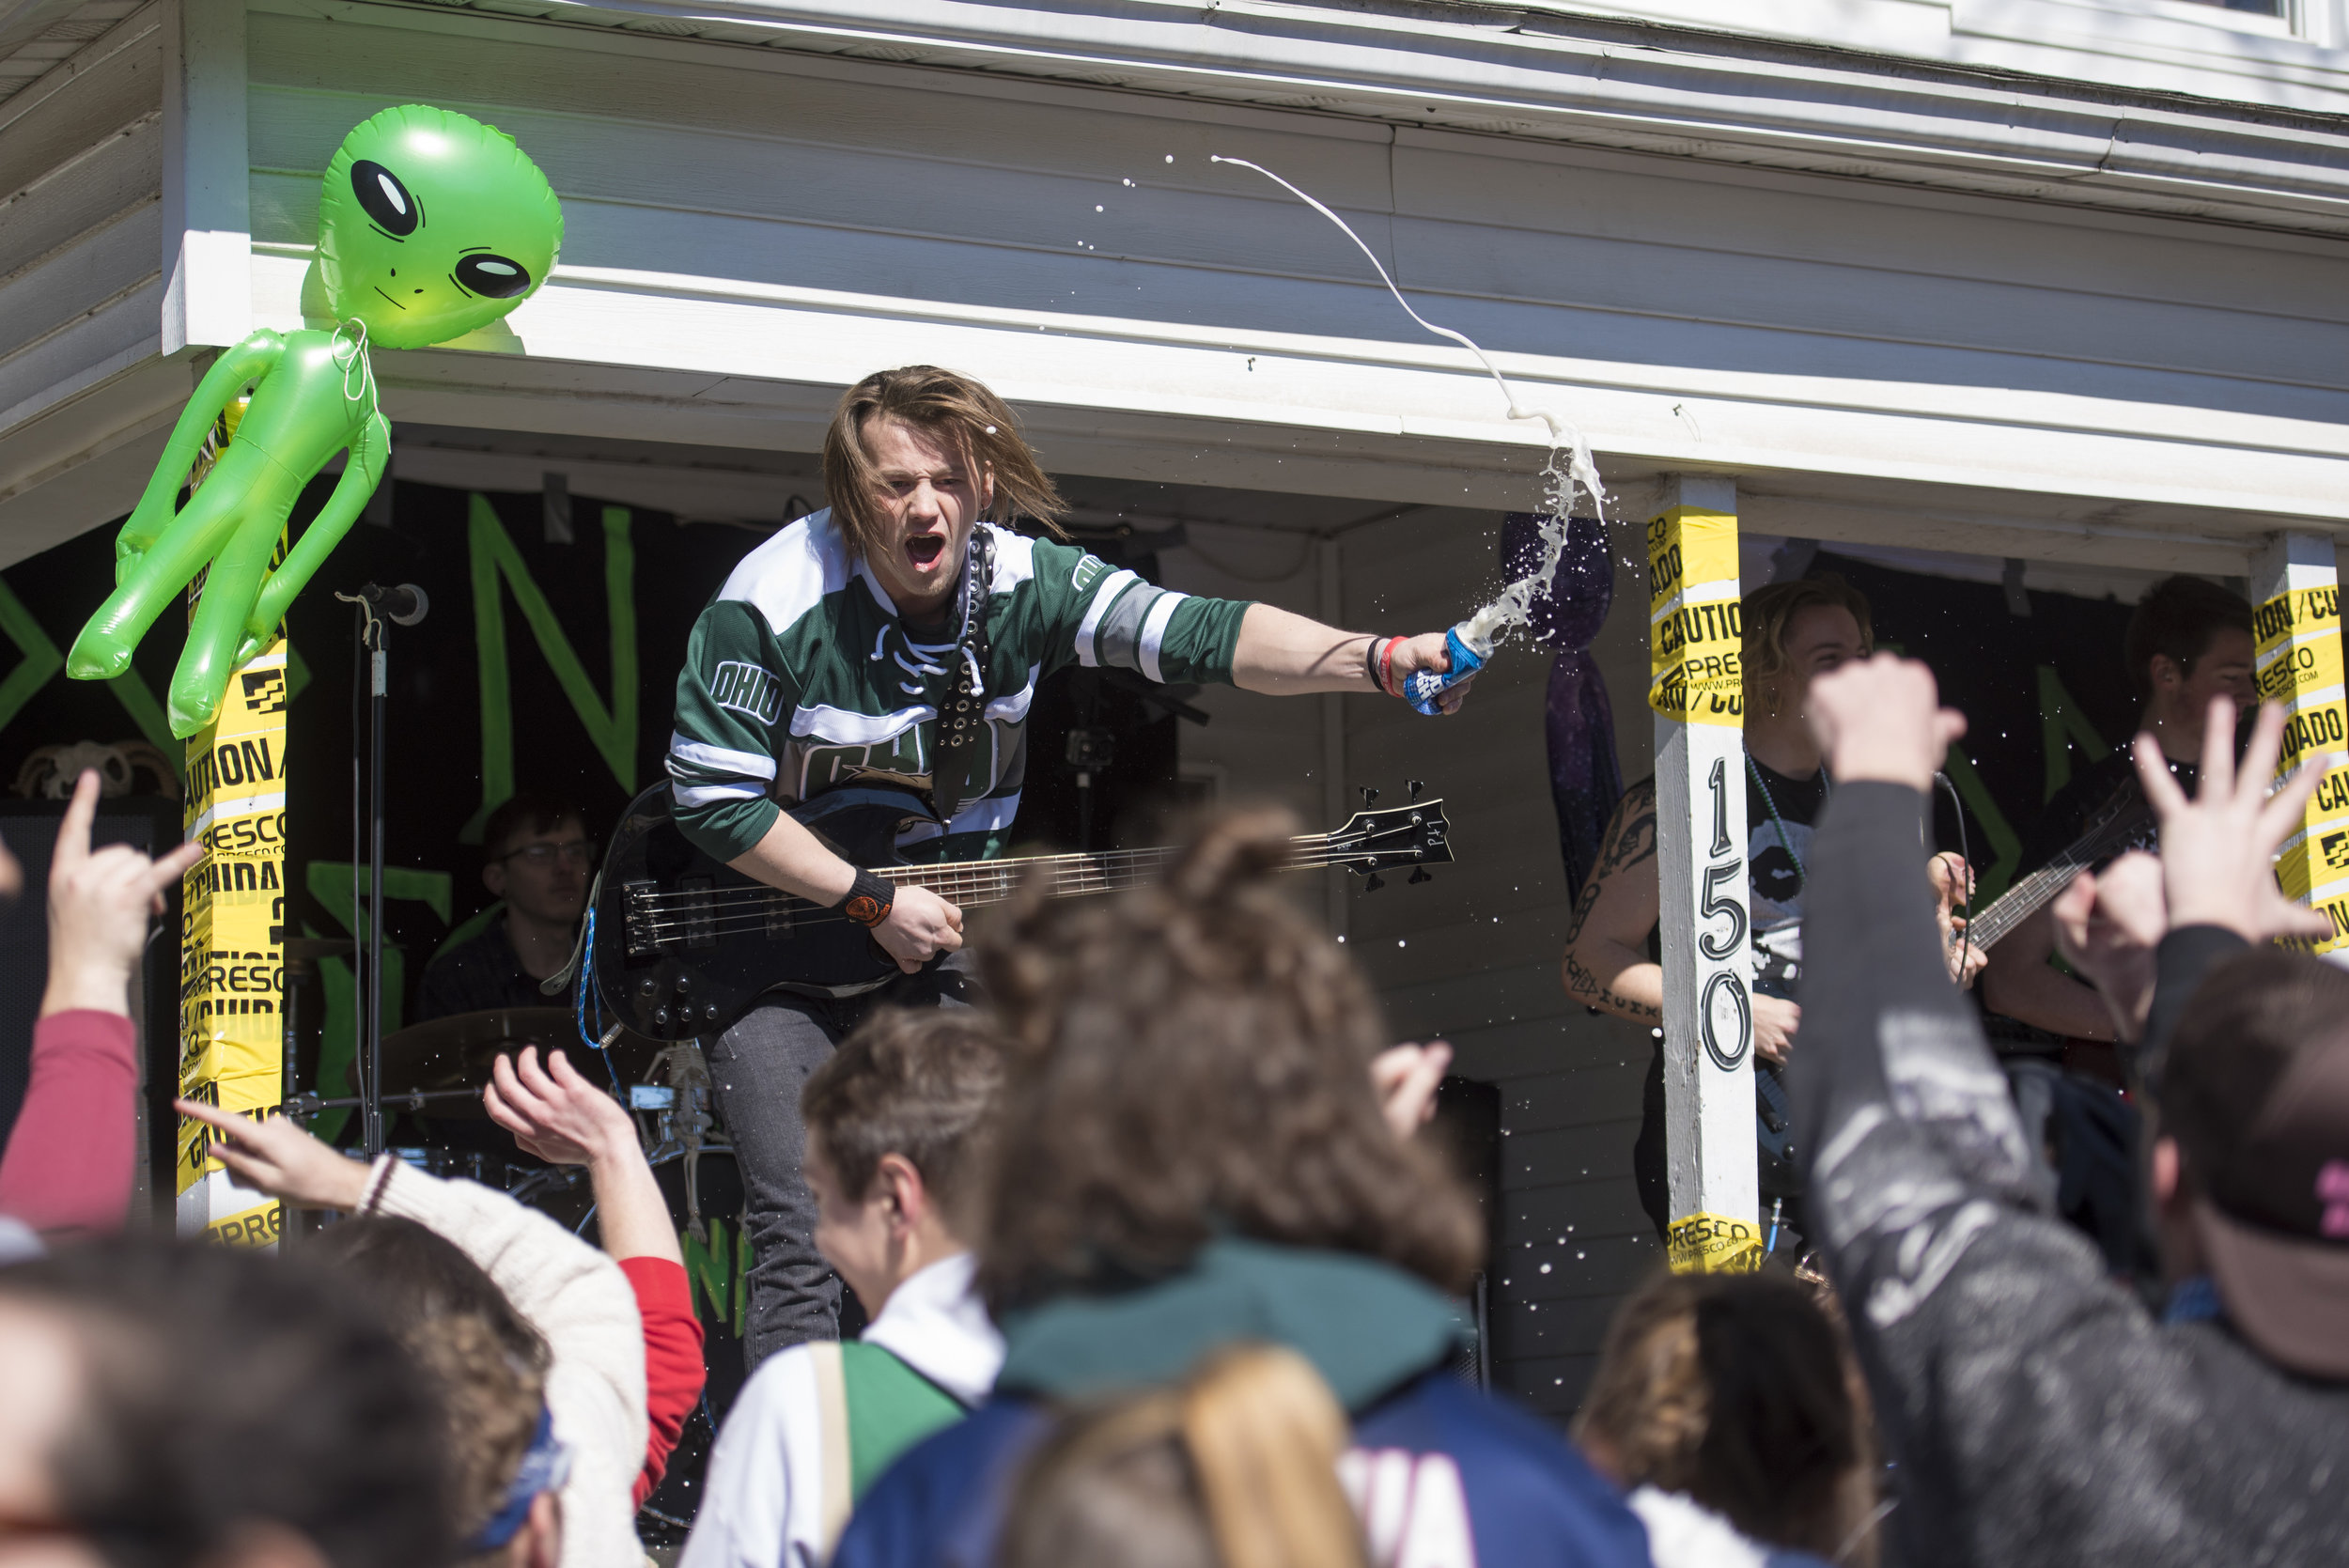 A member of the local band, Do Not Recessitate, throws a beer into the crowd during Mill Fest on March 3, 2018 in Athens, Ohio.